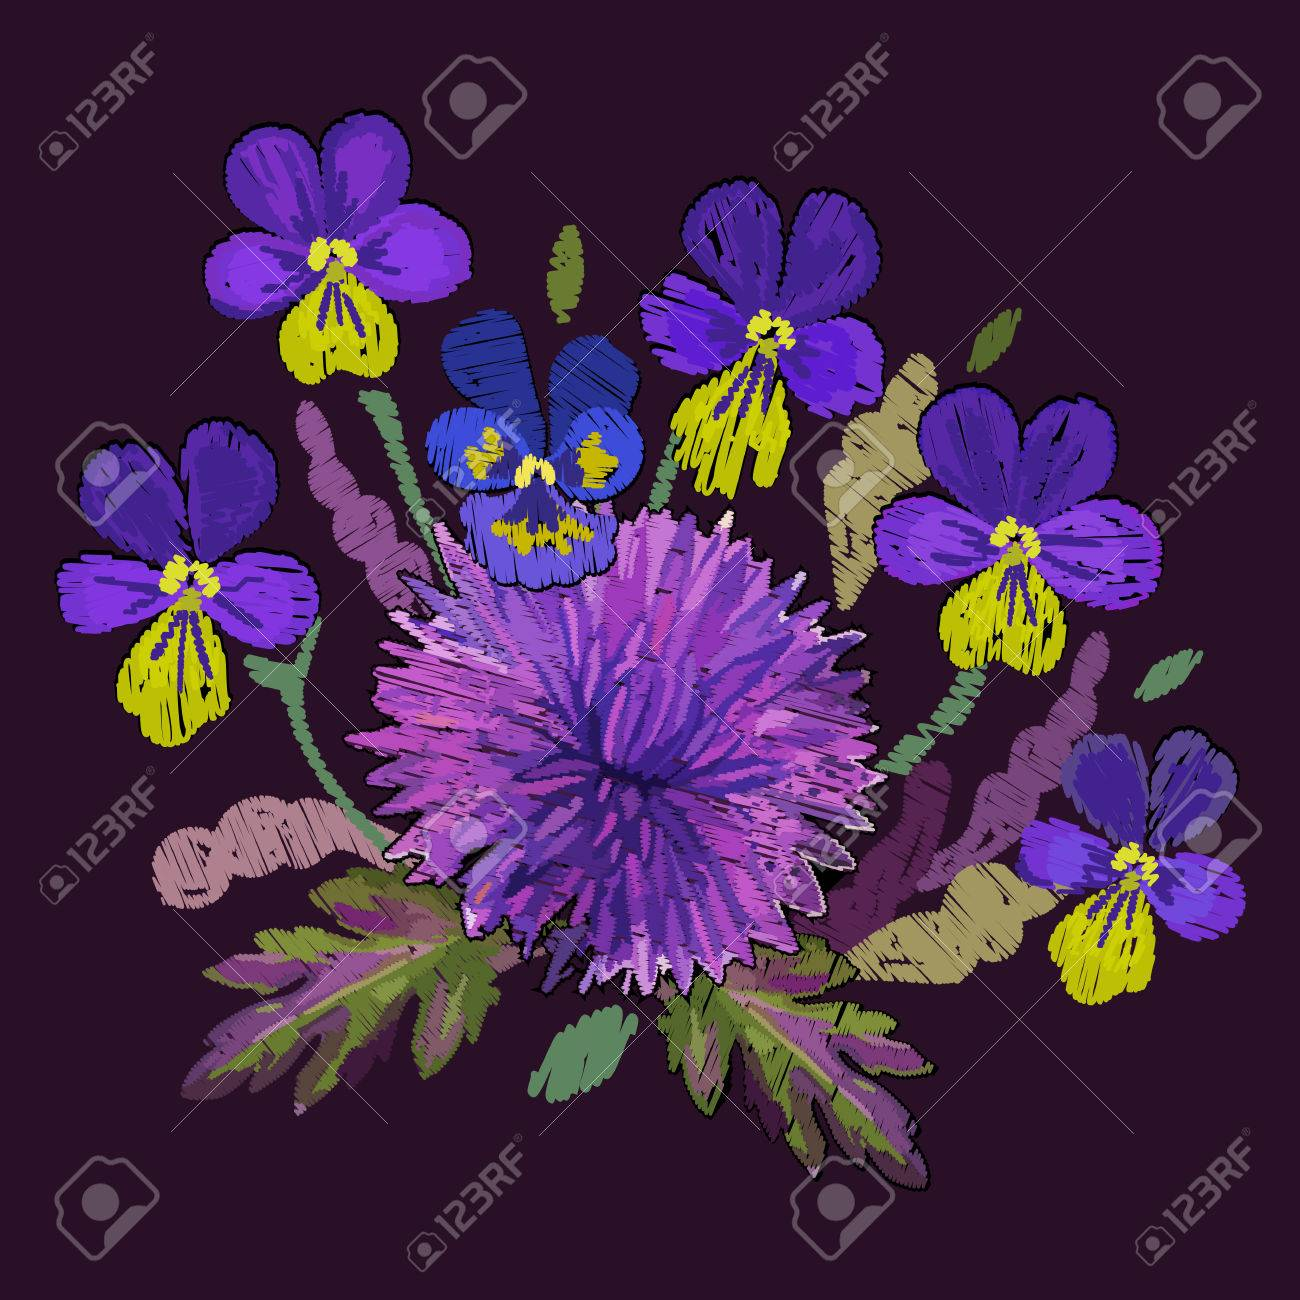 Chrysanthemum Violet Pansies Embroidered Flowers Embroidery Royalty Free Cliparts Vectors And Stock Illustration Image 86133131